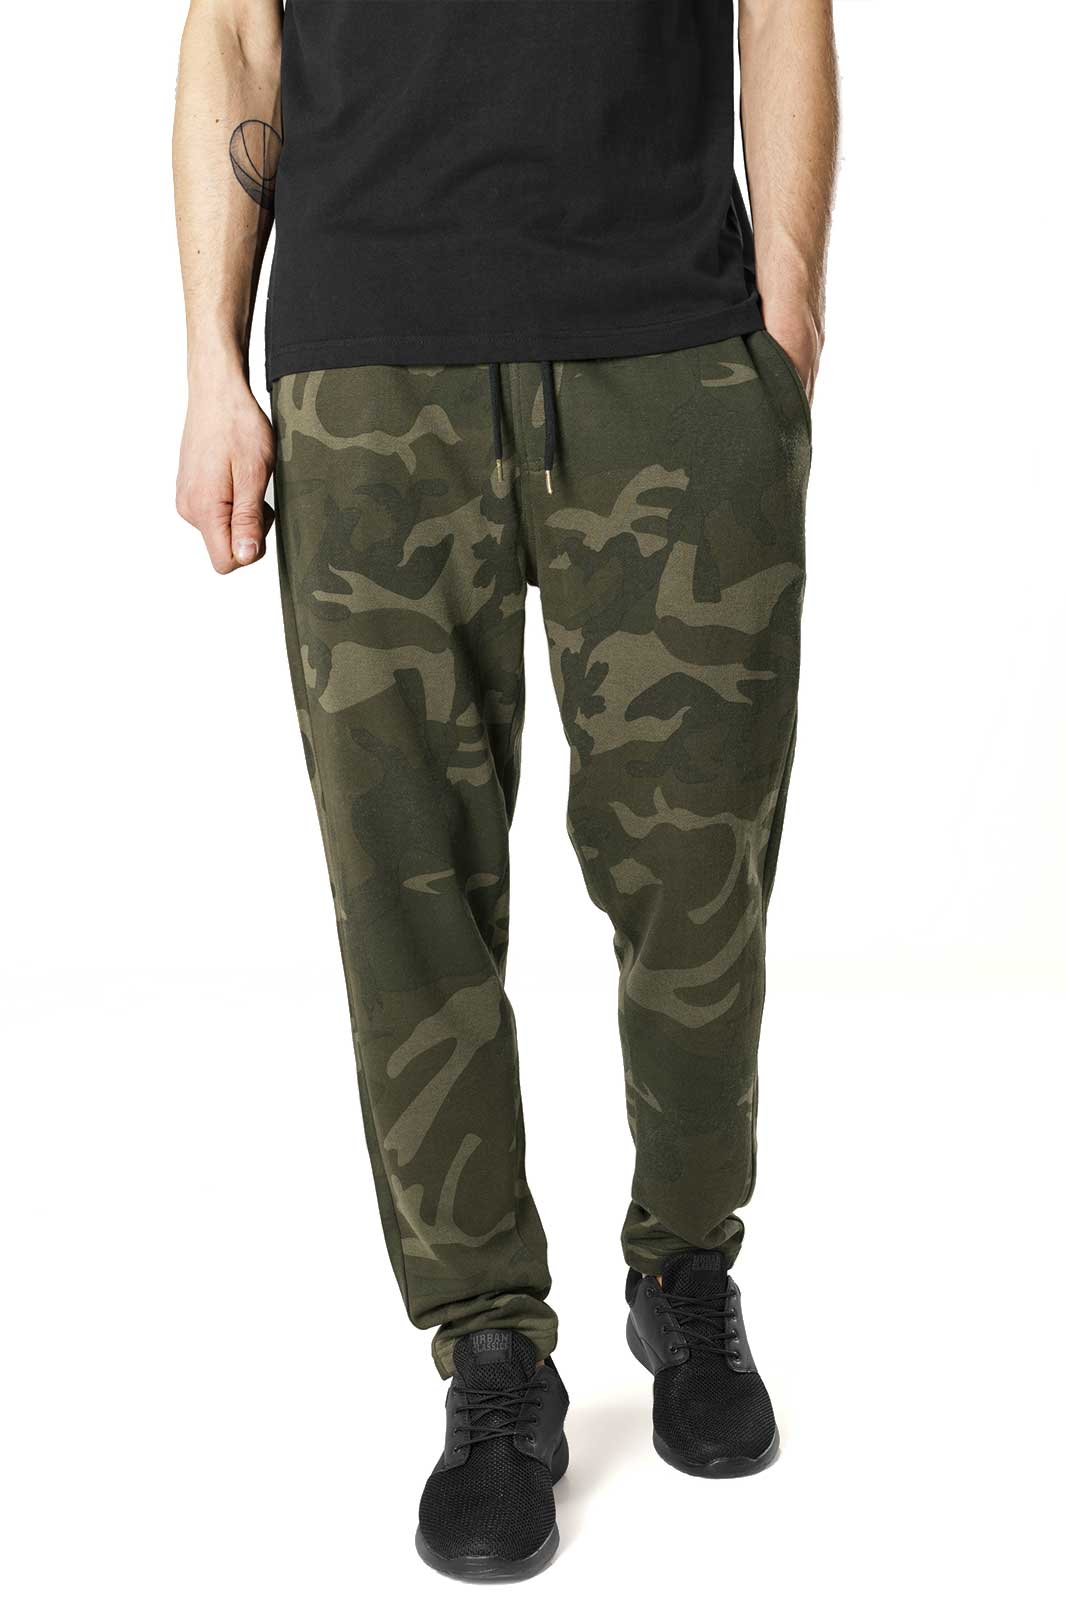 Camo Sweat Pants Camo